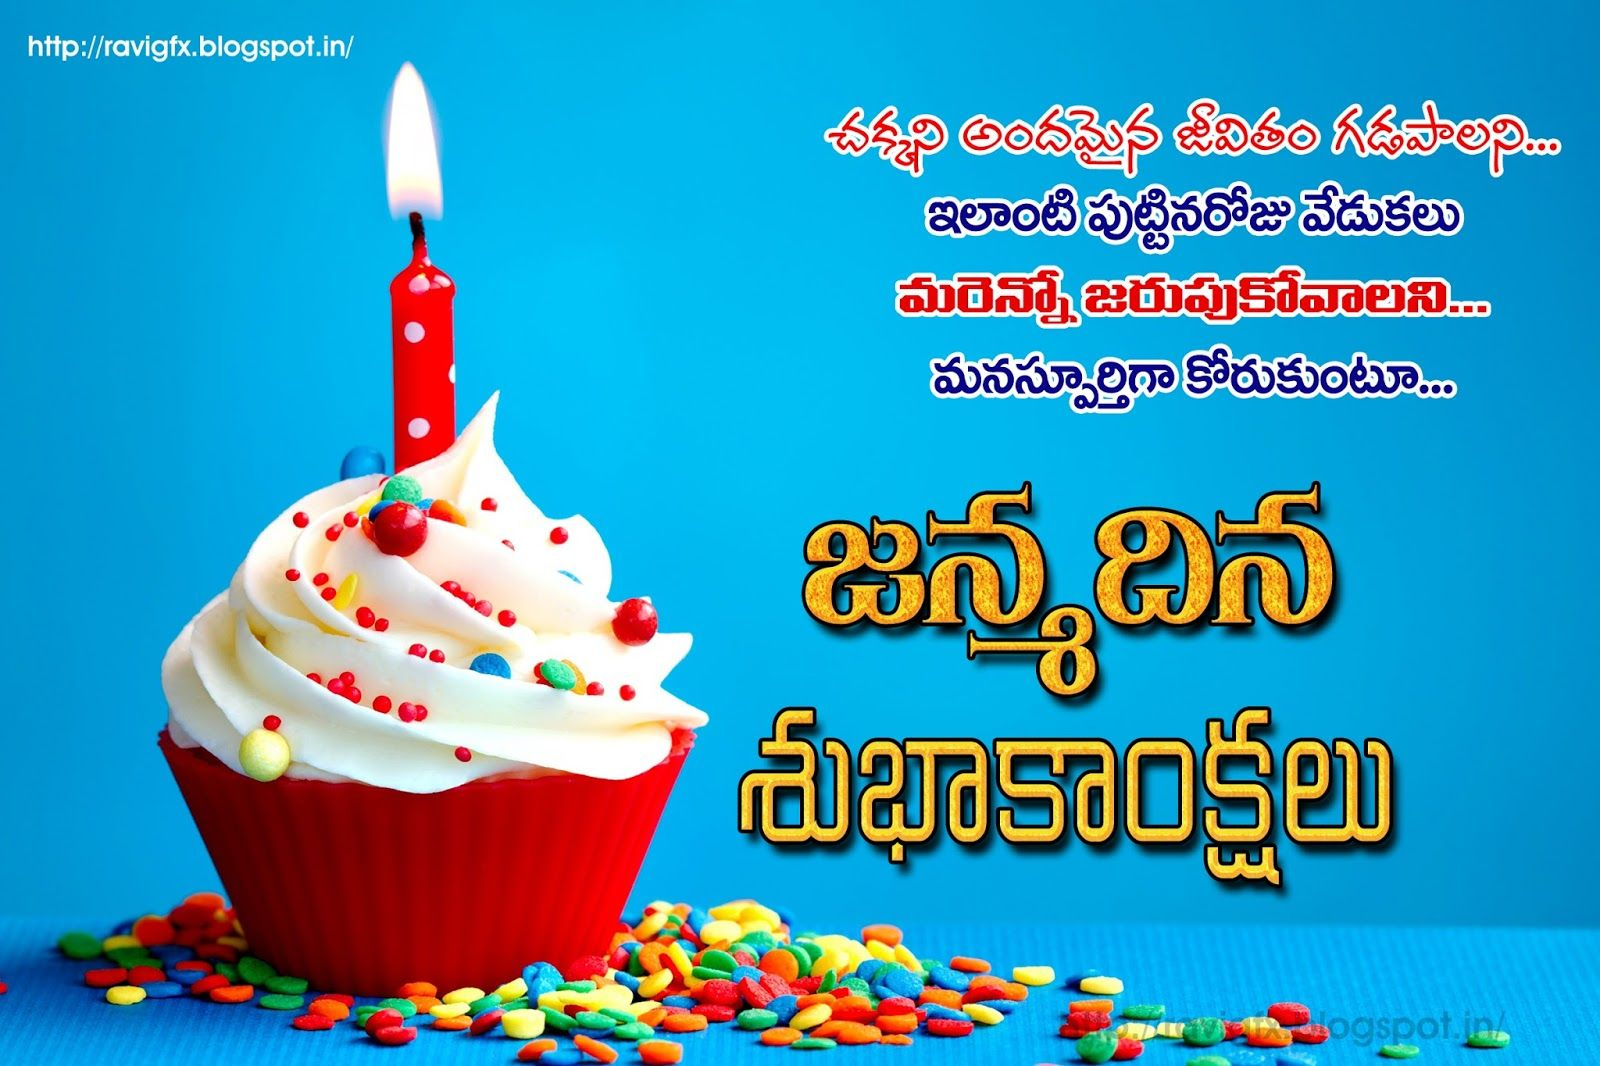 Happy birthday telugu quotes wishes greetings sms images hd birthday wishes in telugu with hd pictures best birthday quotes wishes sms in telugu language kristyandbryce Choice Image